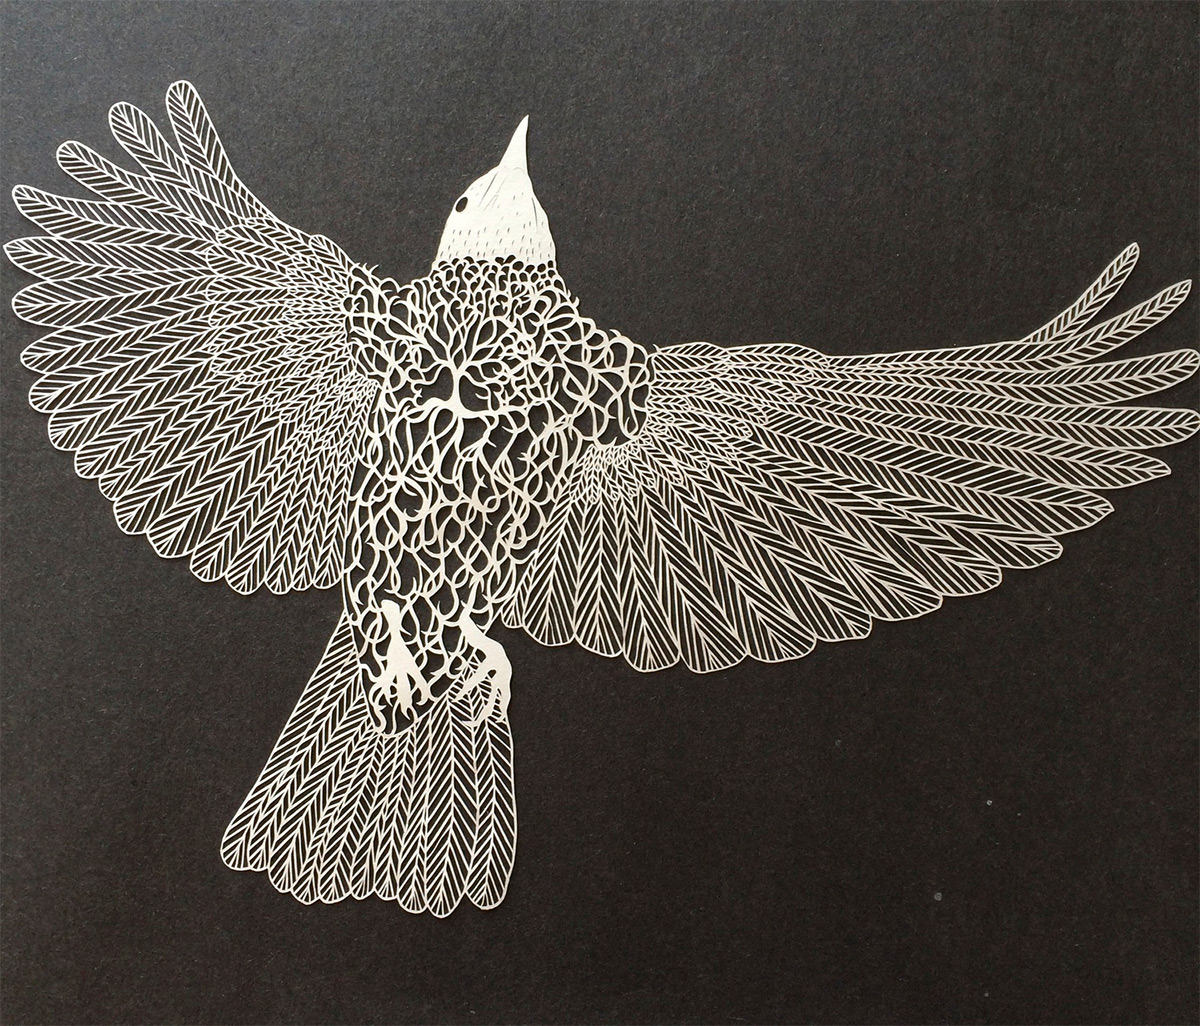 Astonishingly delicate cut paper art by maude white